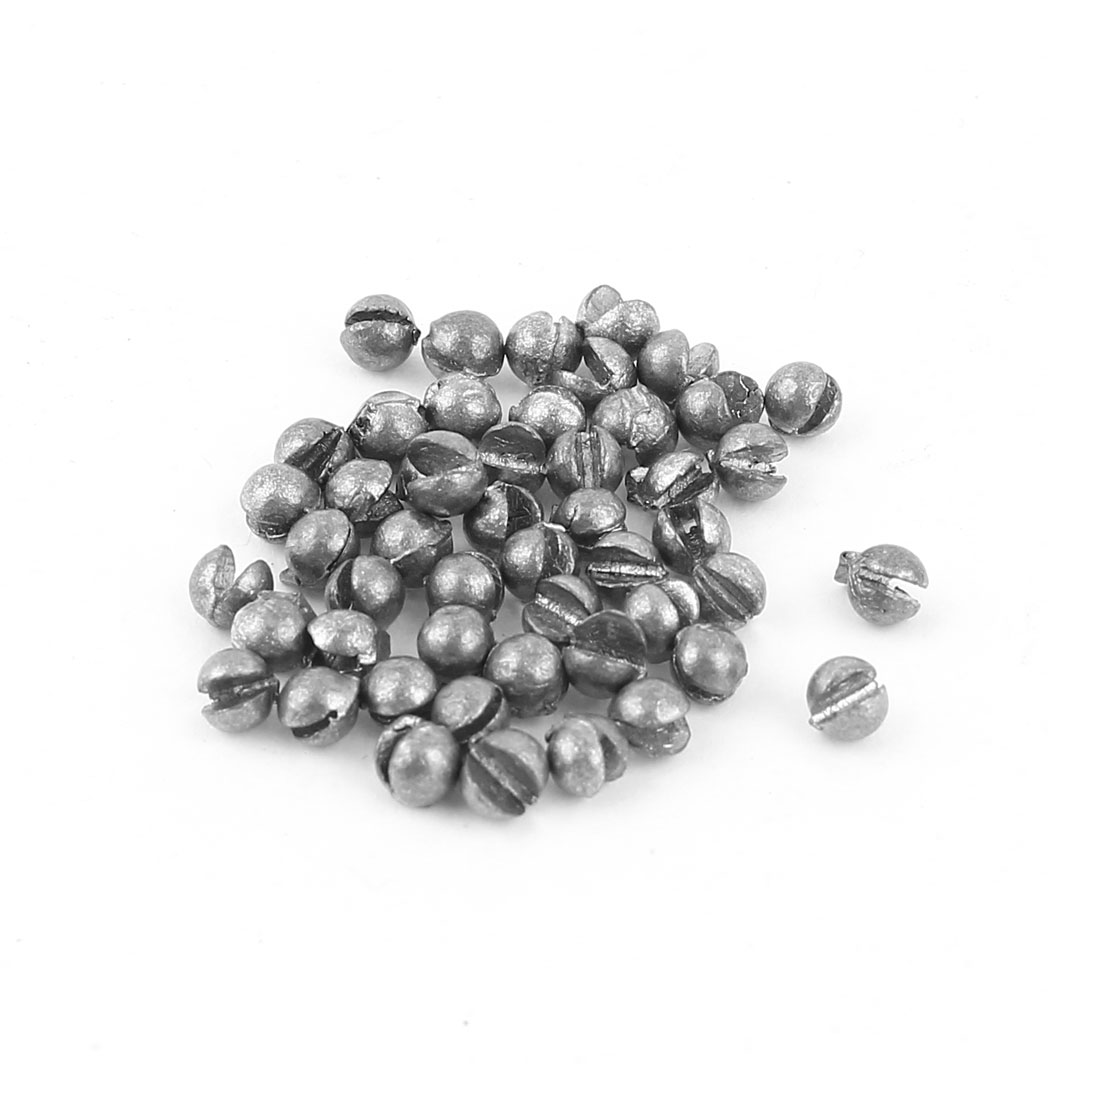 50Pcs 4mm Round Split Shots Sinkers Fish Tackle Dark Gray 0.3g Per Piece